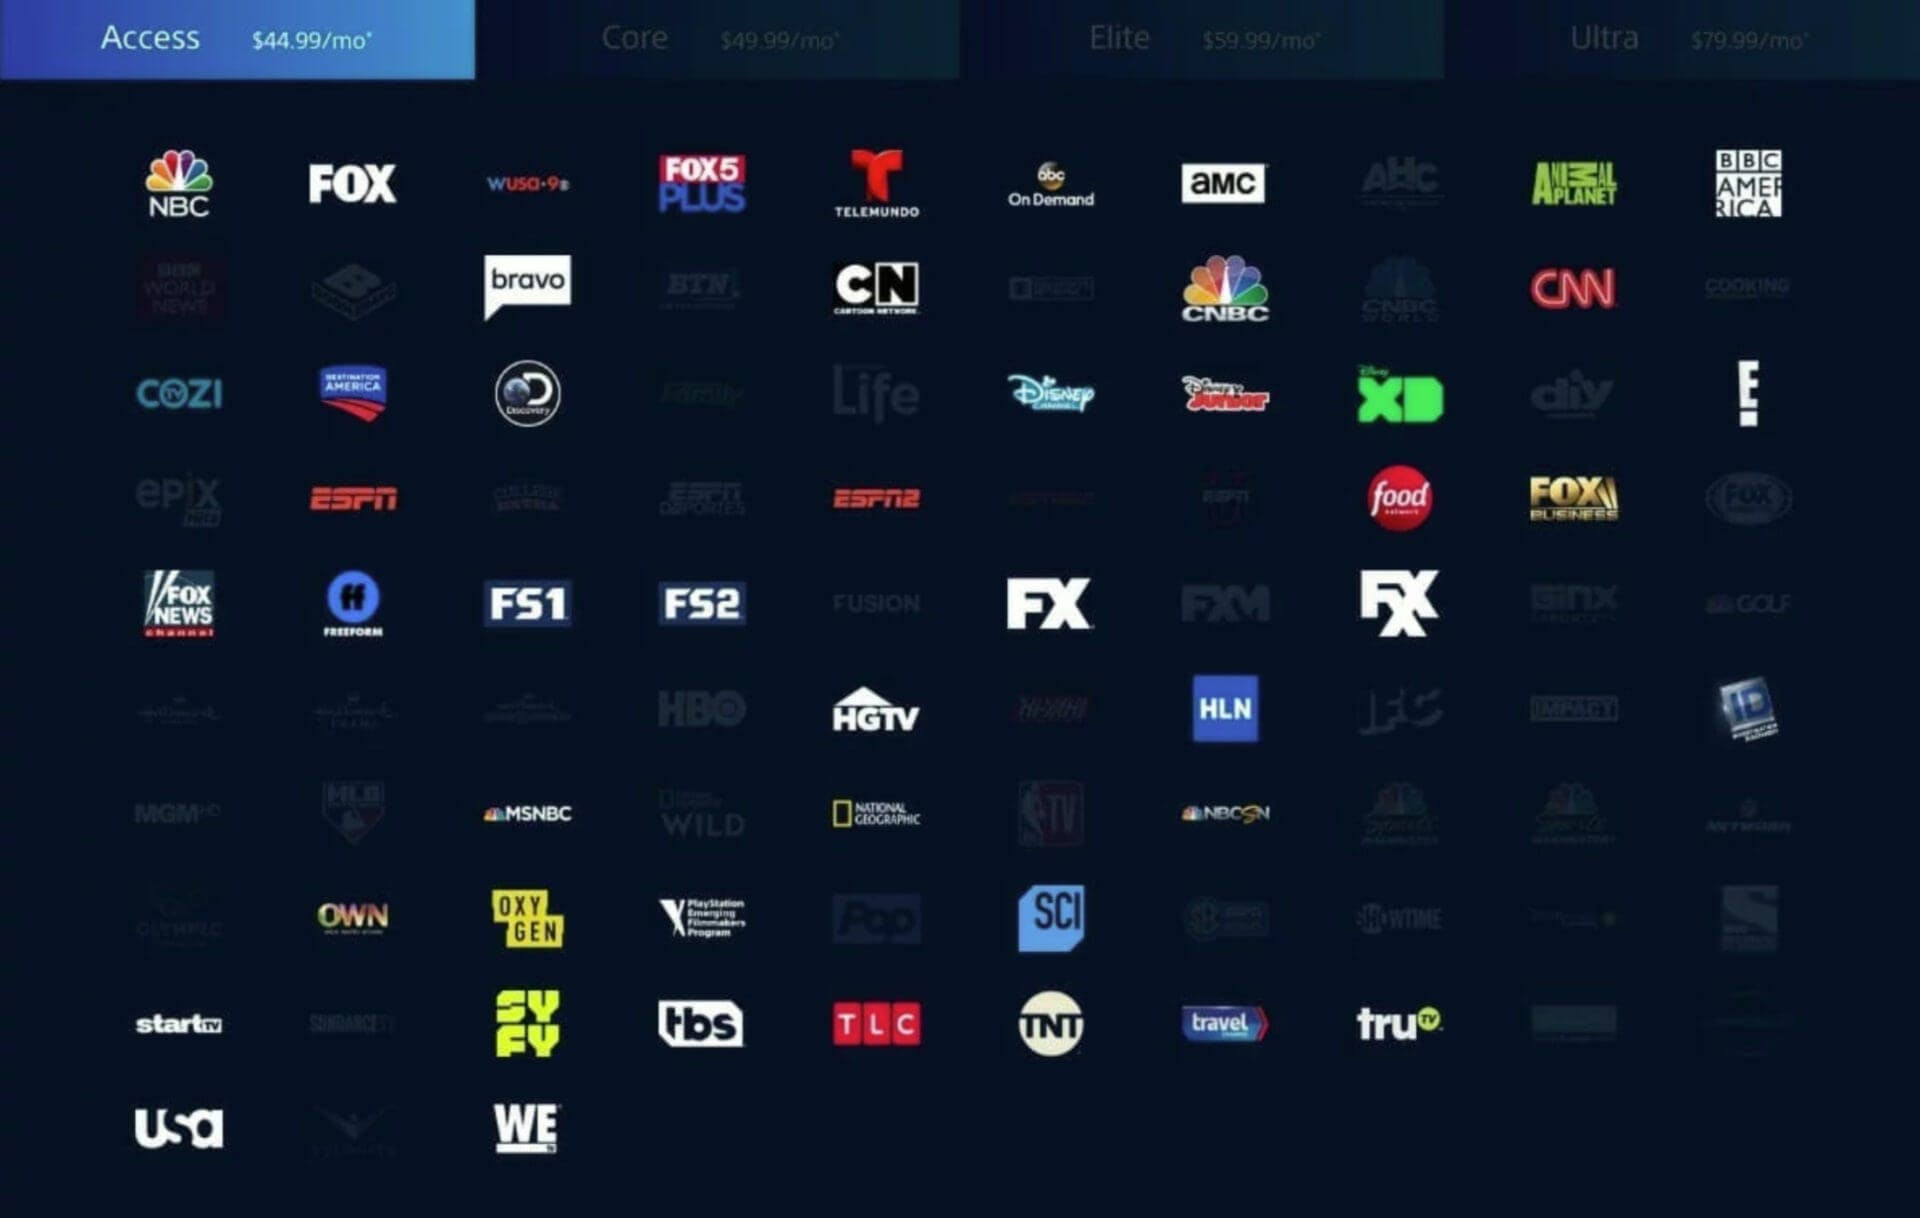 cowboys packers playstation vue streaming nfl nfc